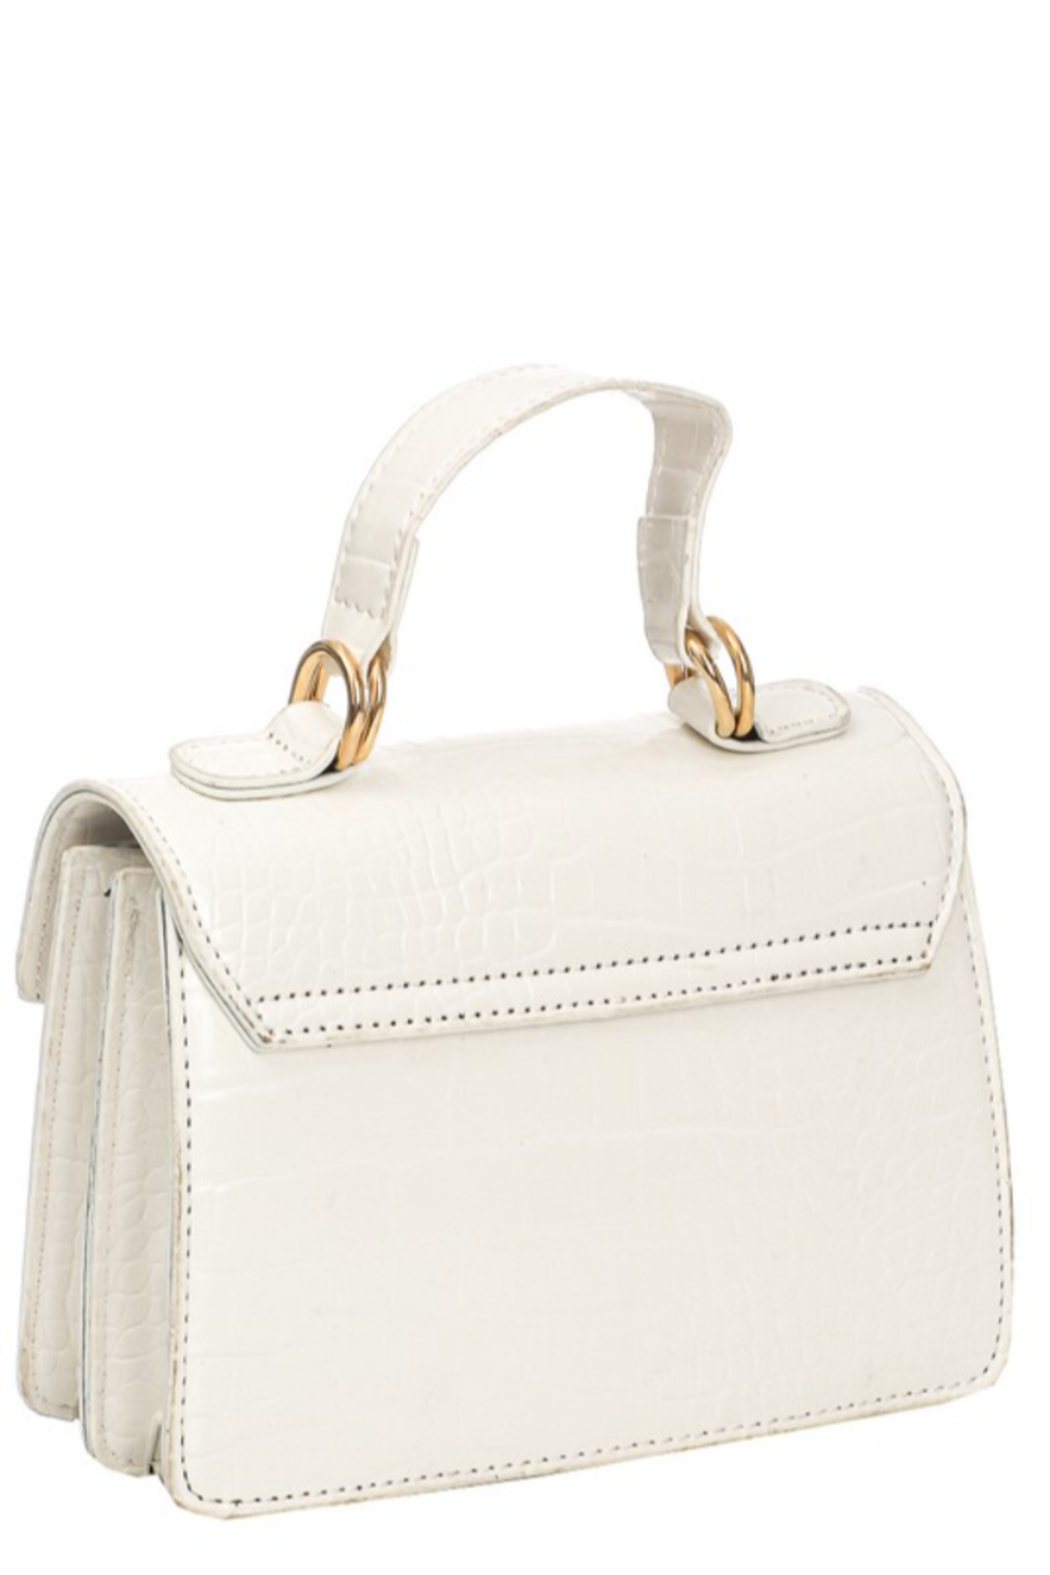 Fame Accessories Mischa Mini Bag - Front Full Image